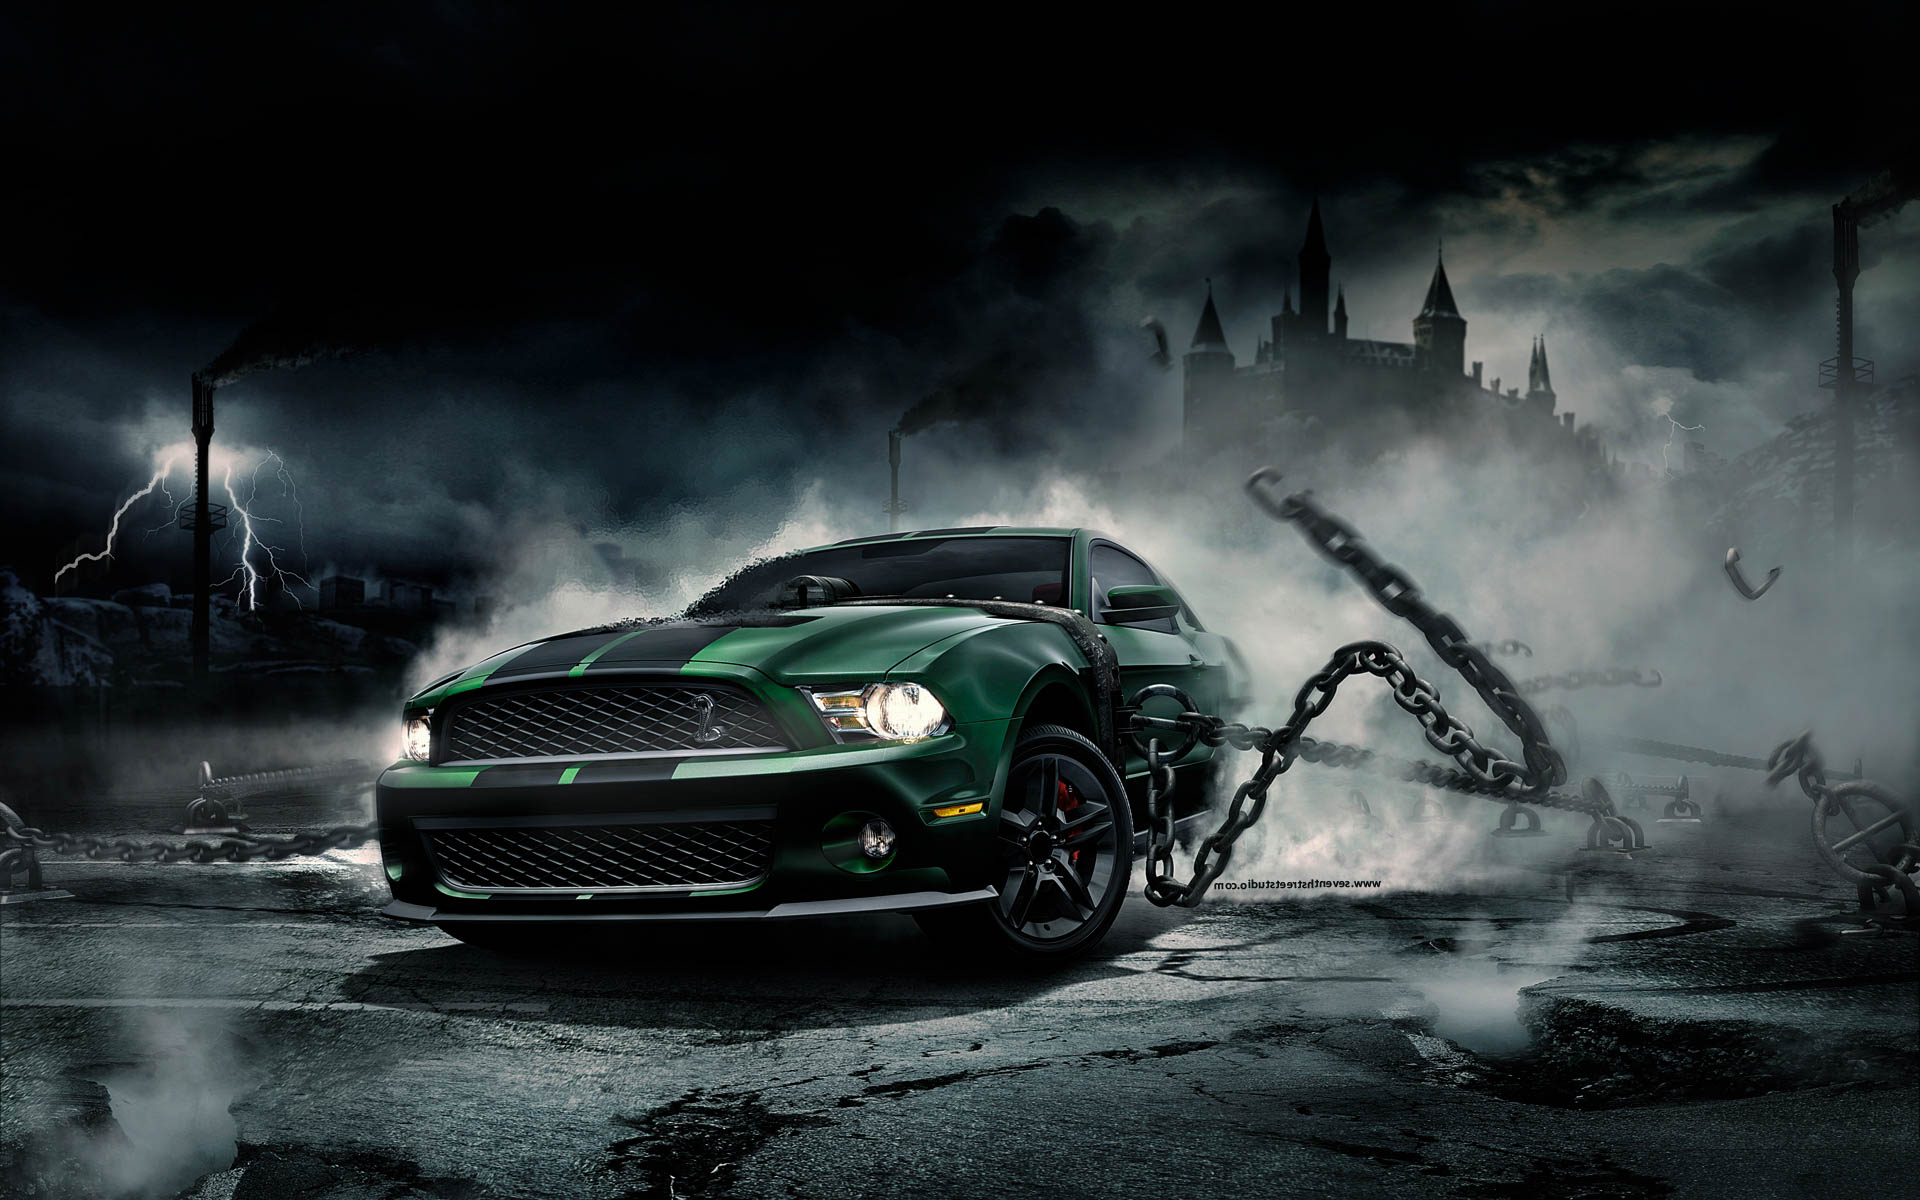 Ford Mustang New Model Epic Hd Wallpapers 2017